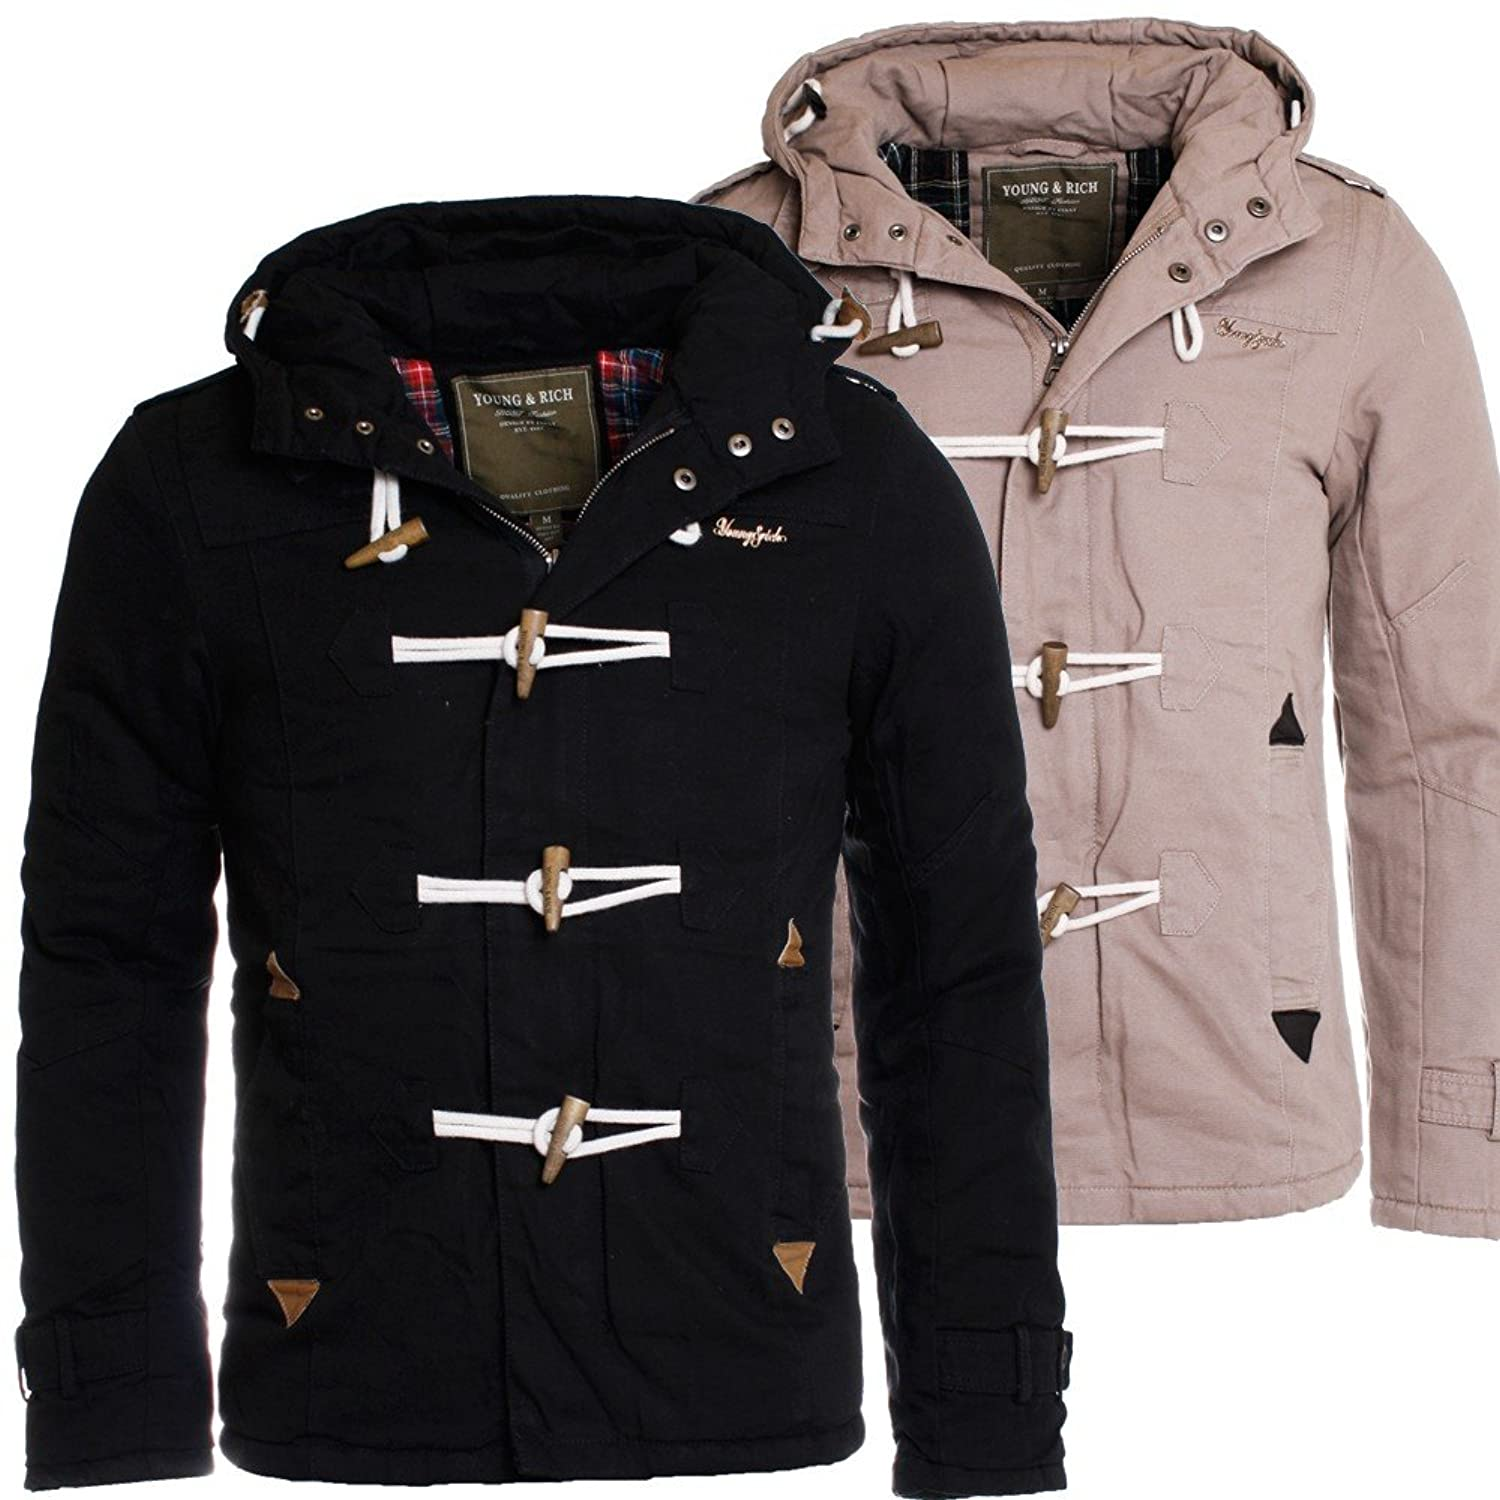 Young & Rich Herren Winter Jacke Dufflecoat